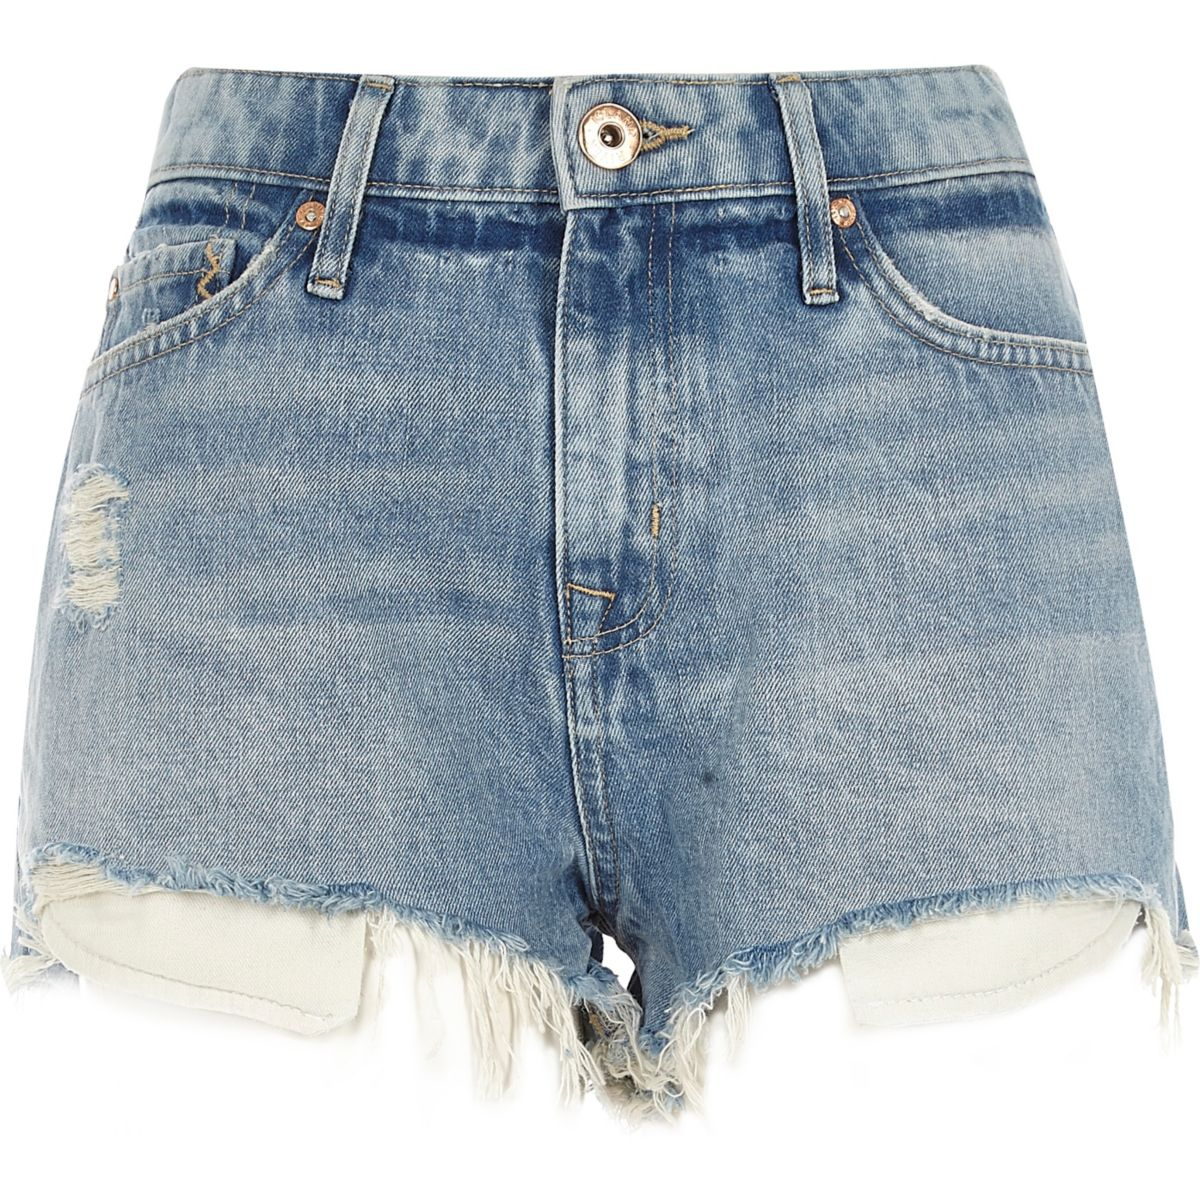 Light blue wash mid rise ripped hot pants